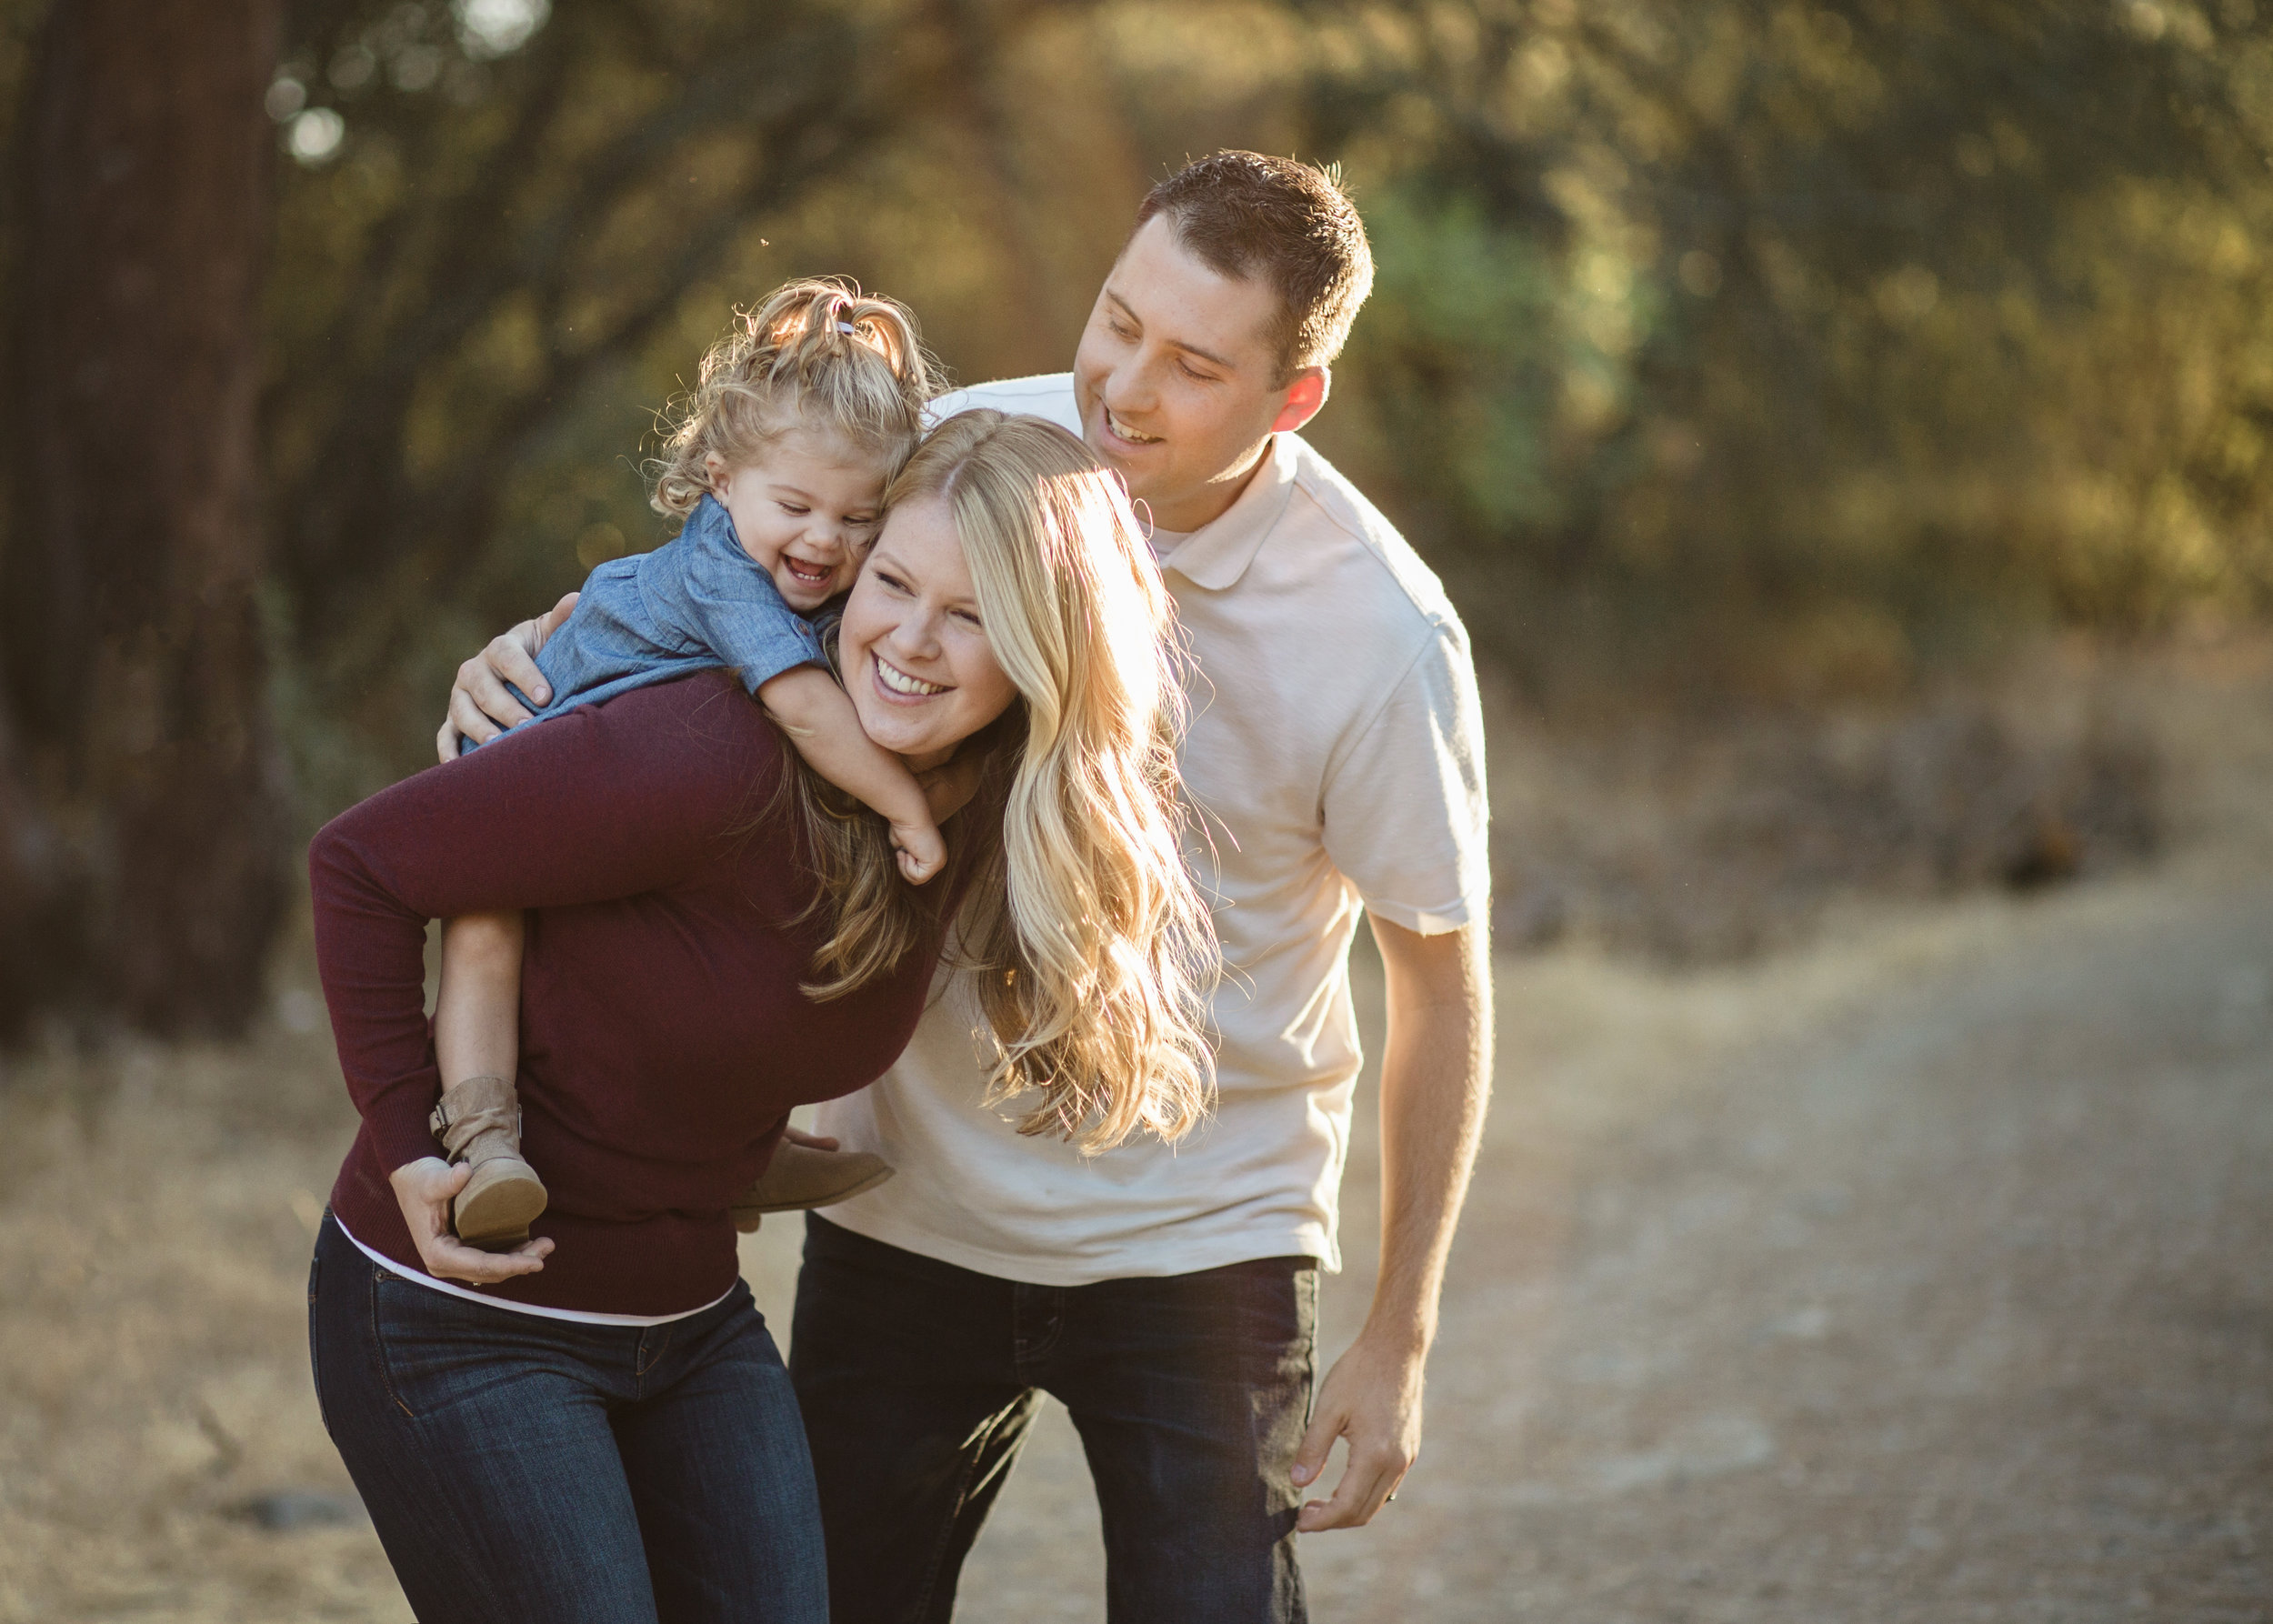 San Francisco Bay Area Pleasanton Family Photographer 0002.JPG